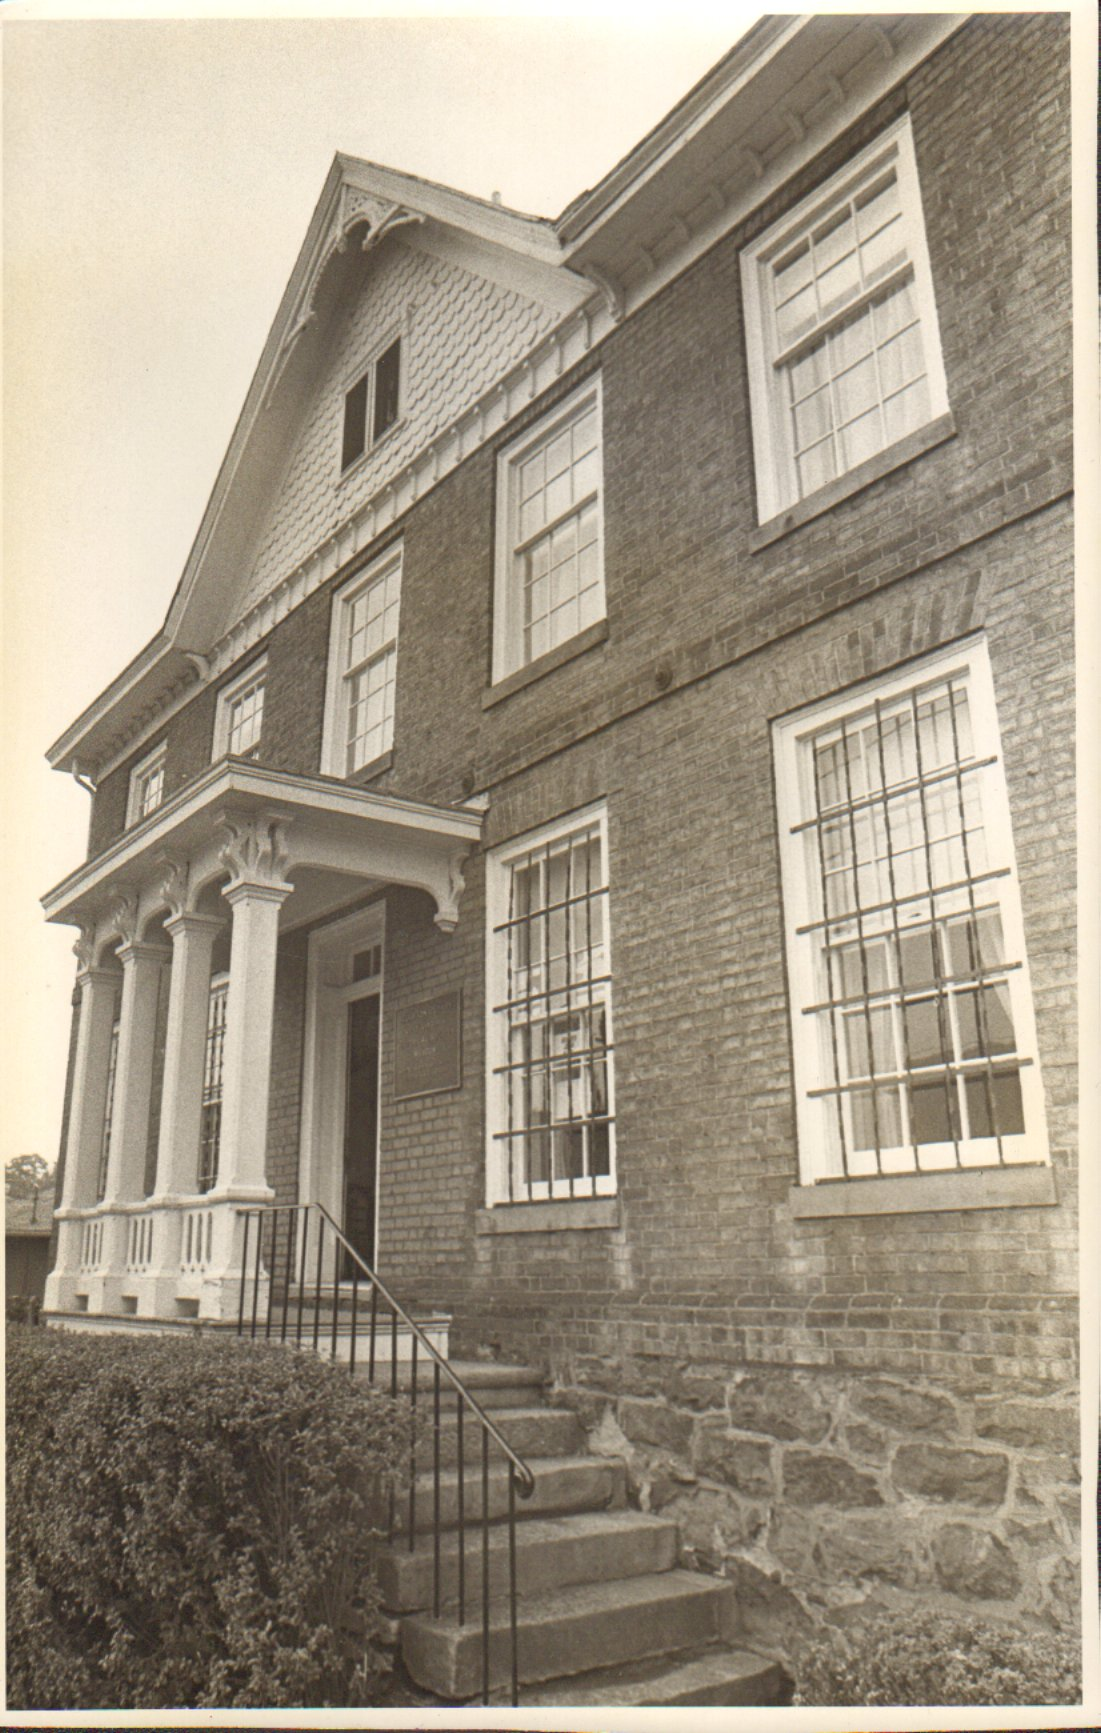 Black and white photo of the Stealey-Goff-Vance House in 1980.